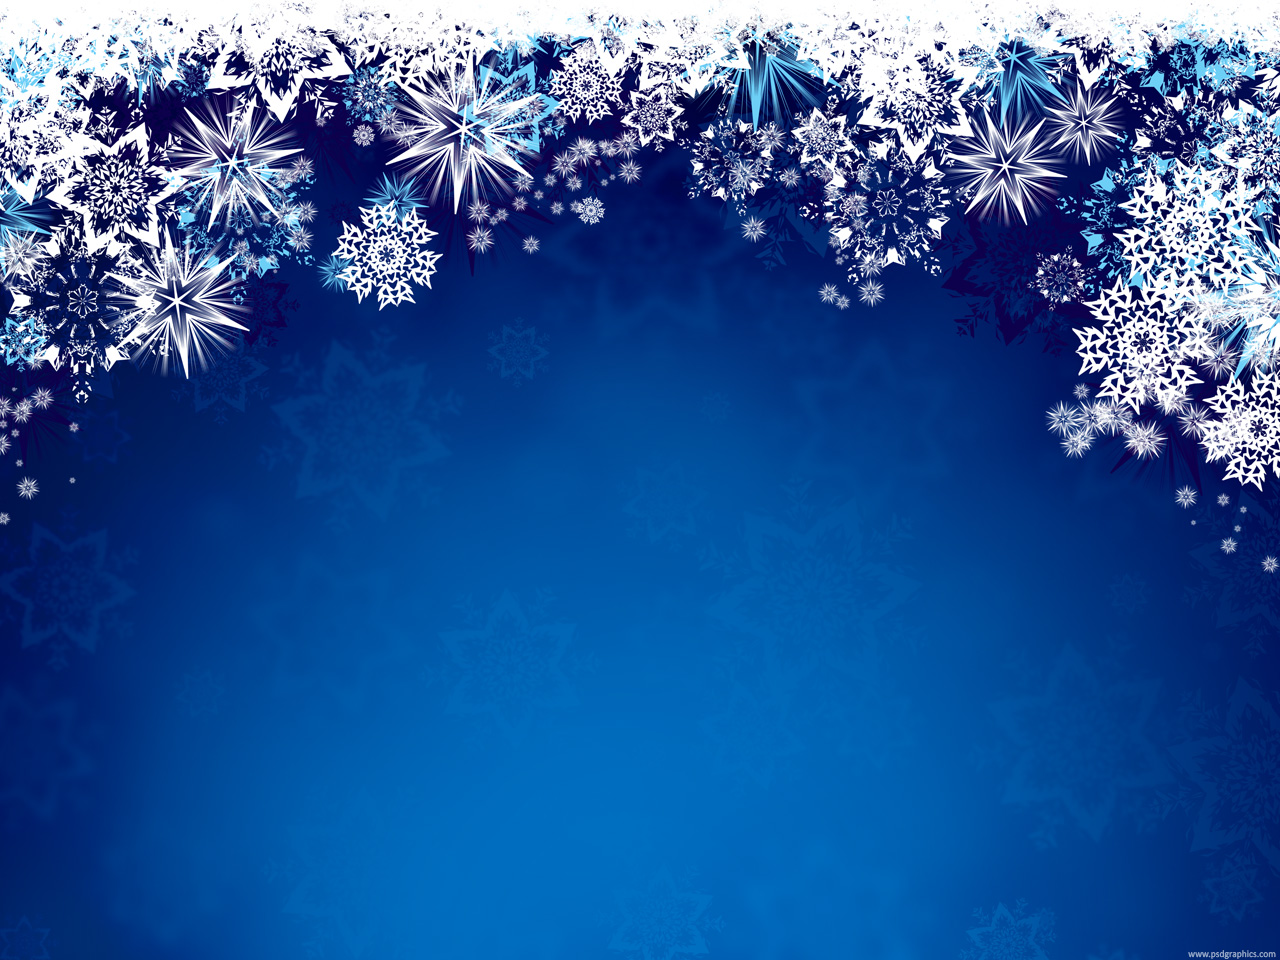 Winter Wallpaper Templates